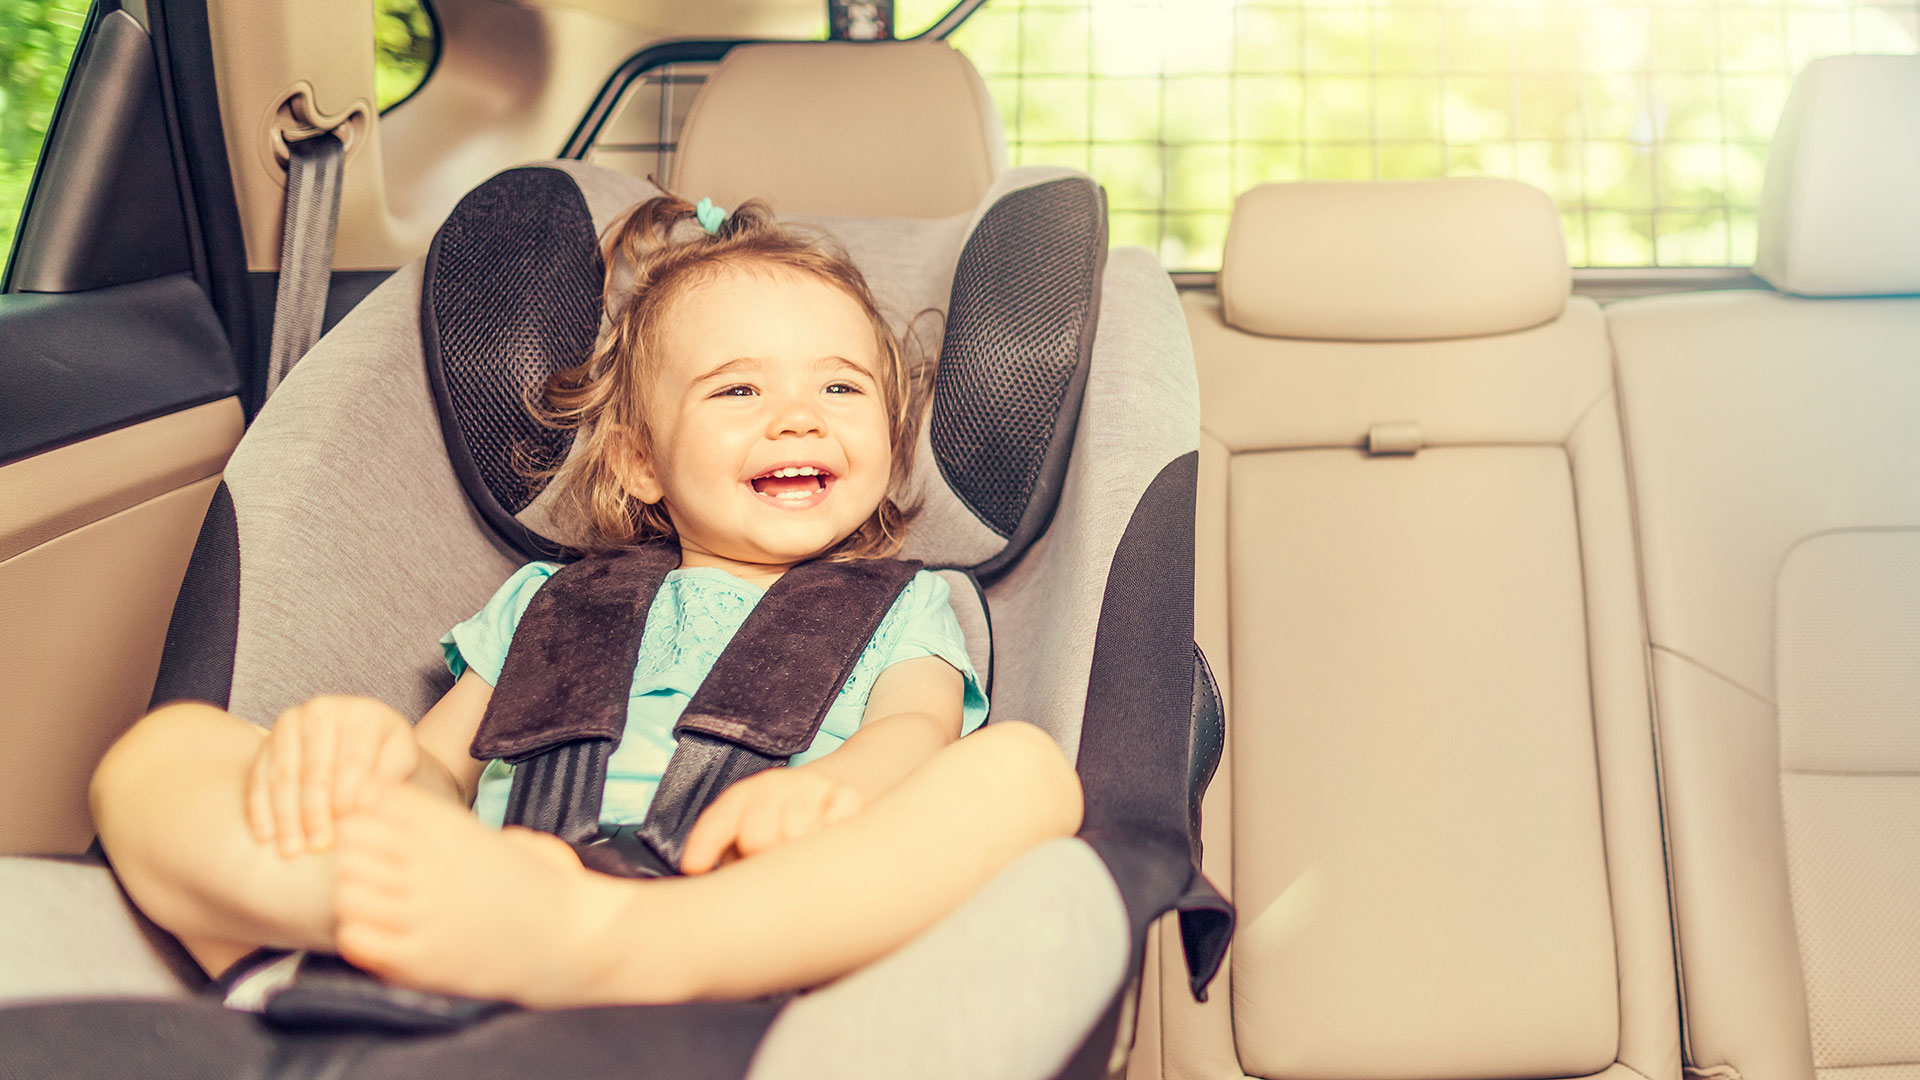 Here S What You Should Do With An Expired Car Seat Sheknows